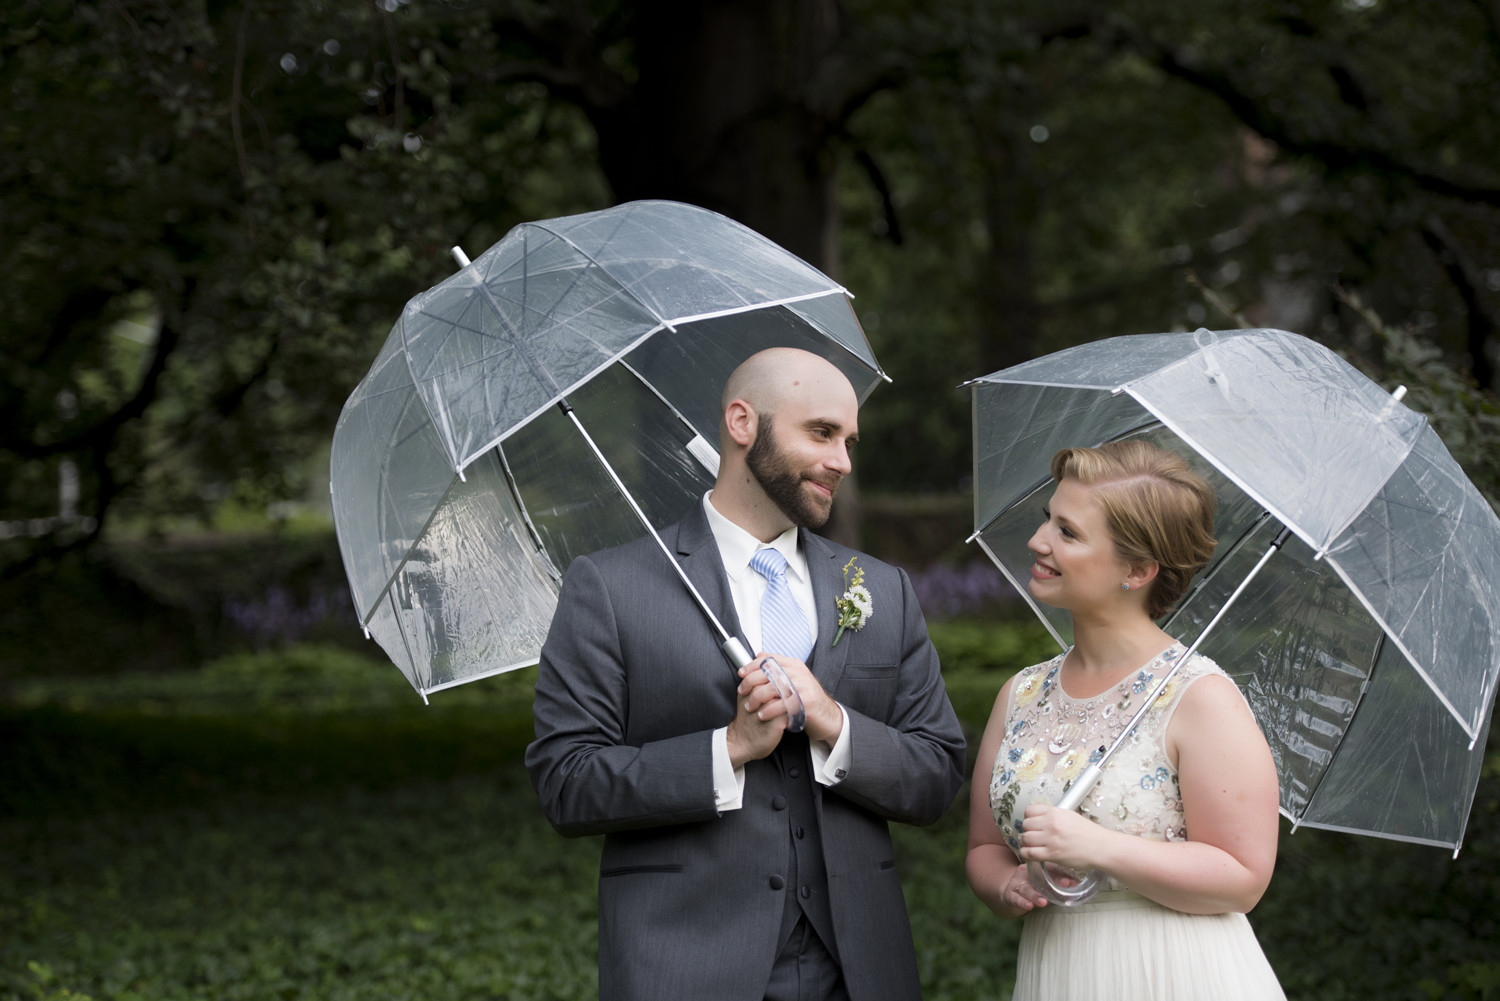 bride and groom with umbrellas on wedding day at Palmer House, Princeton. Princeton wedding photographer